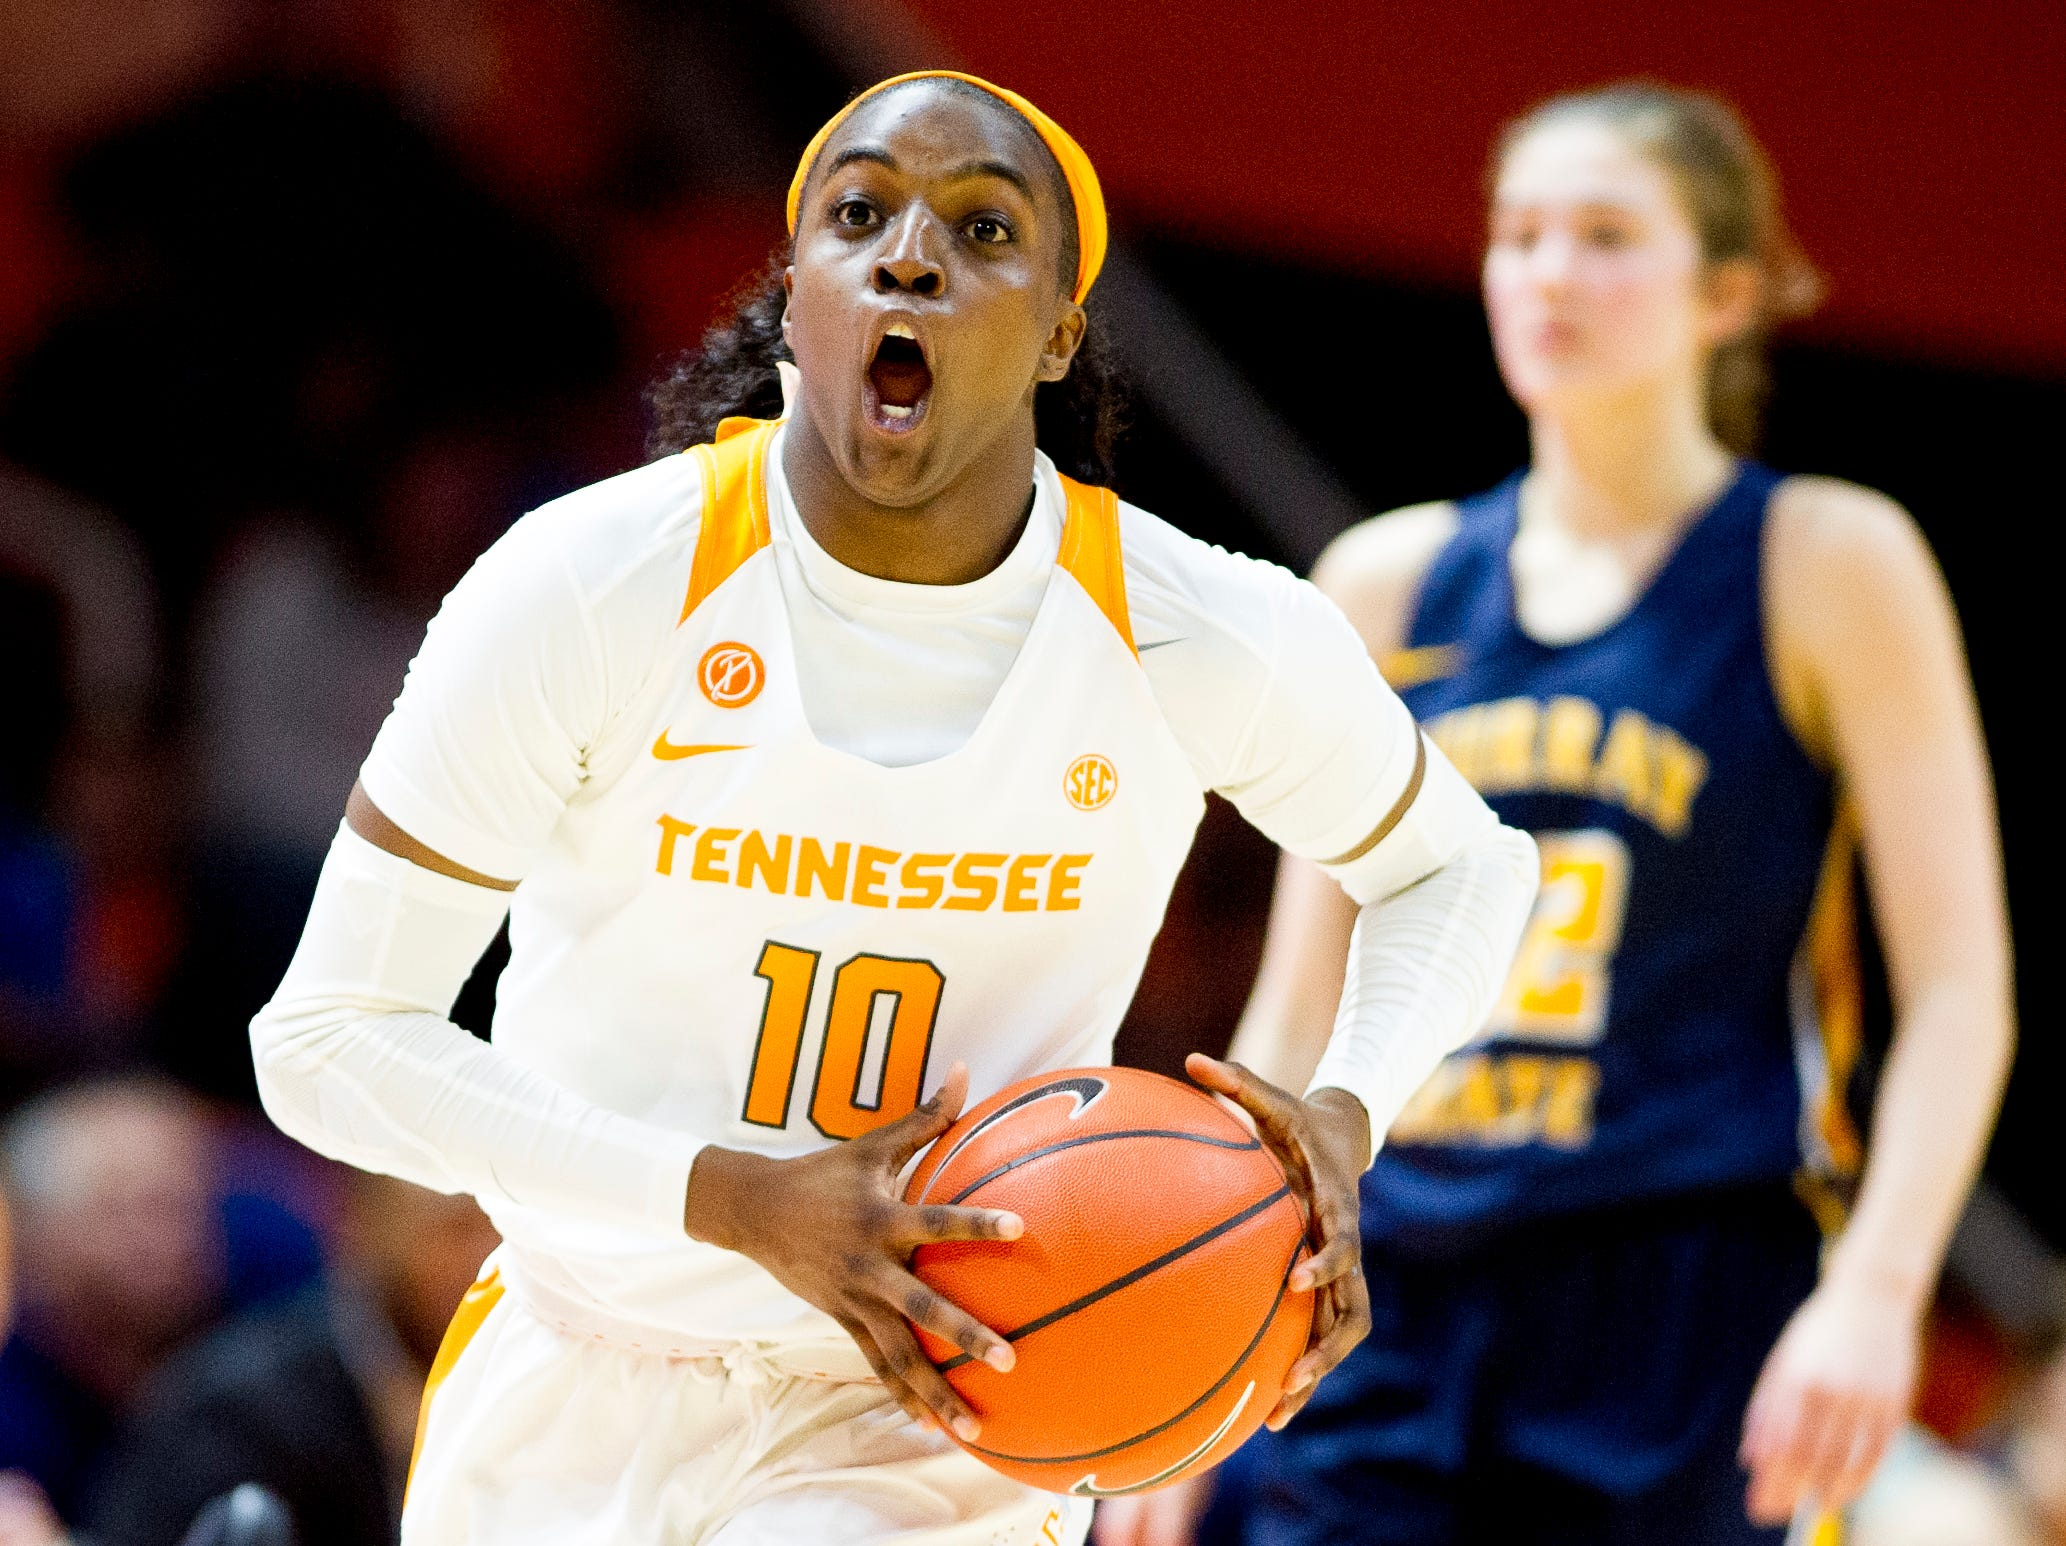 Tennessee guard/forward Meme Jackson (10) dribbles down the court during a game between the Tennessee Lady Vols and Murray State at Thompson-Boling Arena in Knoxville, Tennessee on Friday, December 28, 2018.